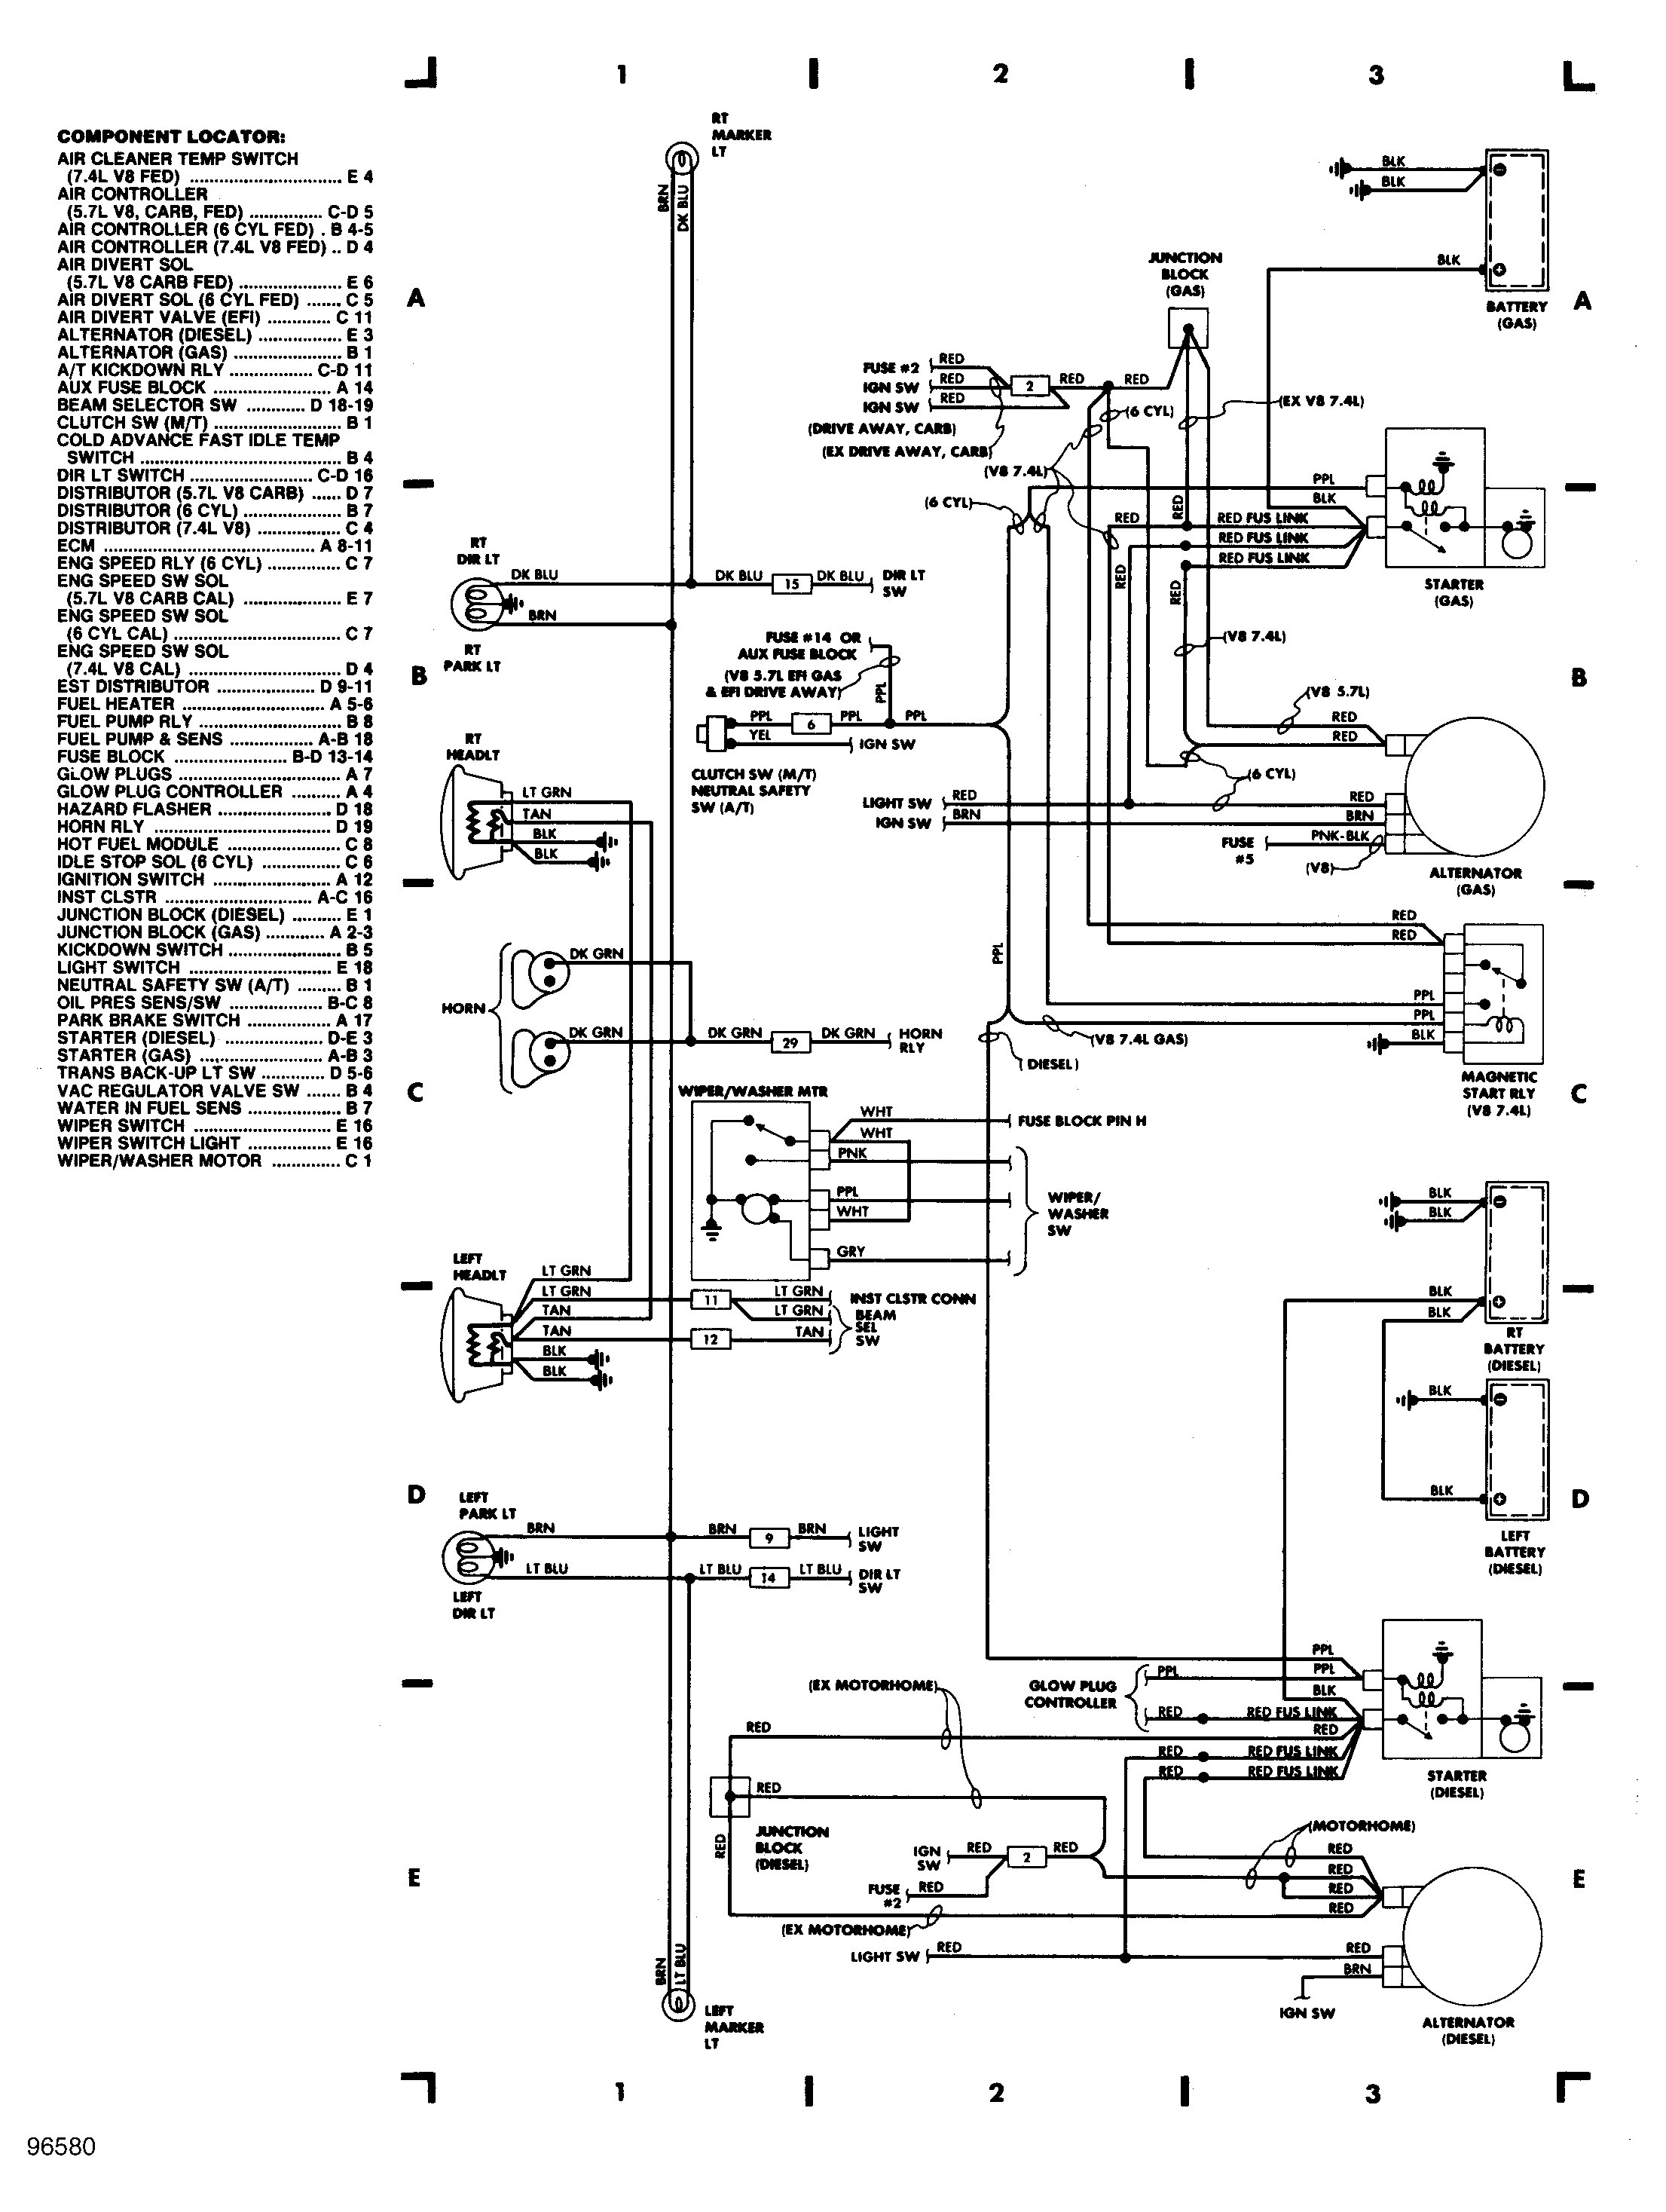 Chevy P30 Wiring Diagram Pdf Wiring Diagram Pace News A Pace News A Valhallarestaurant It